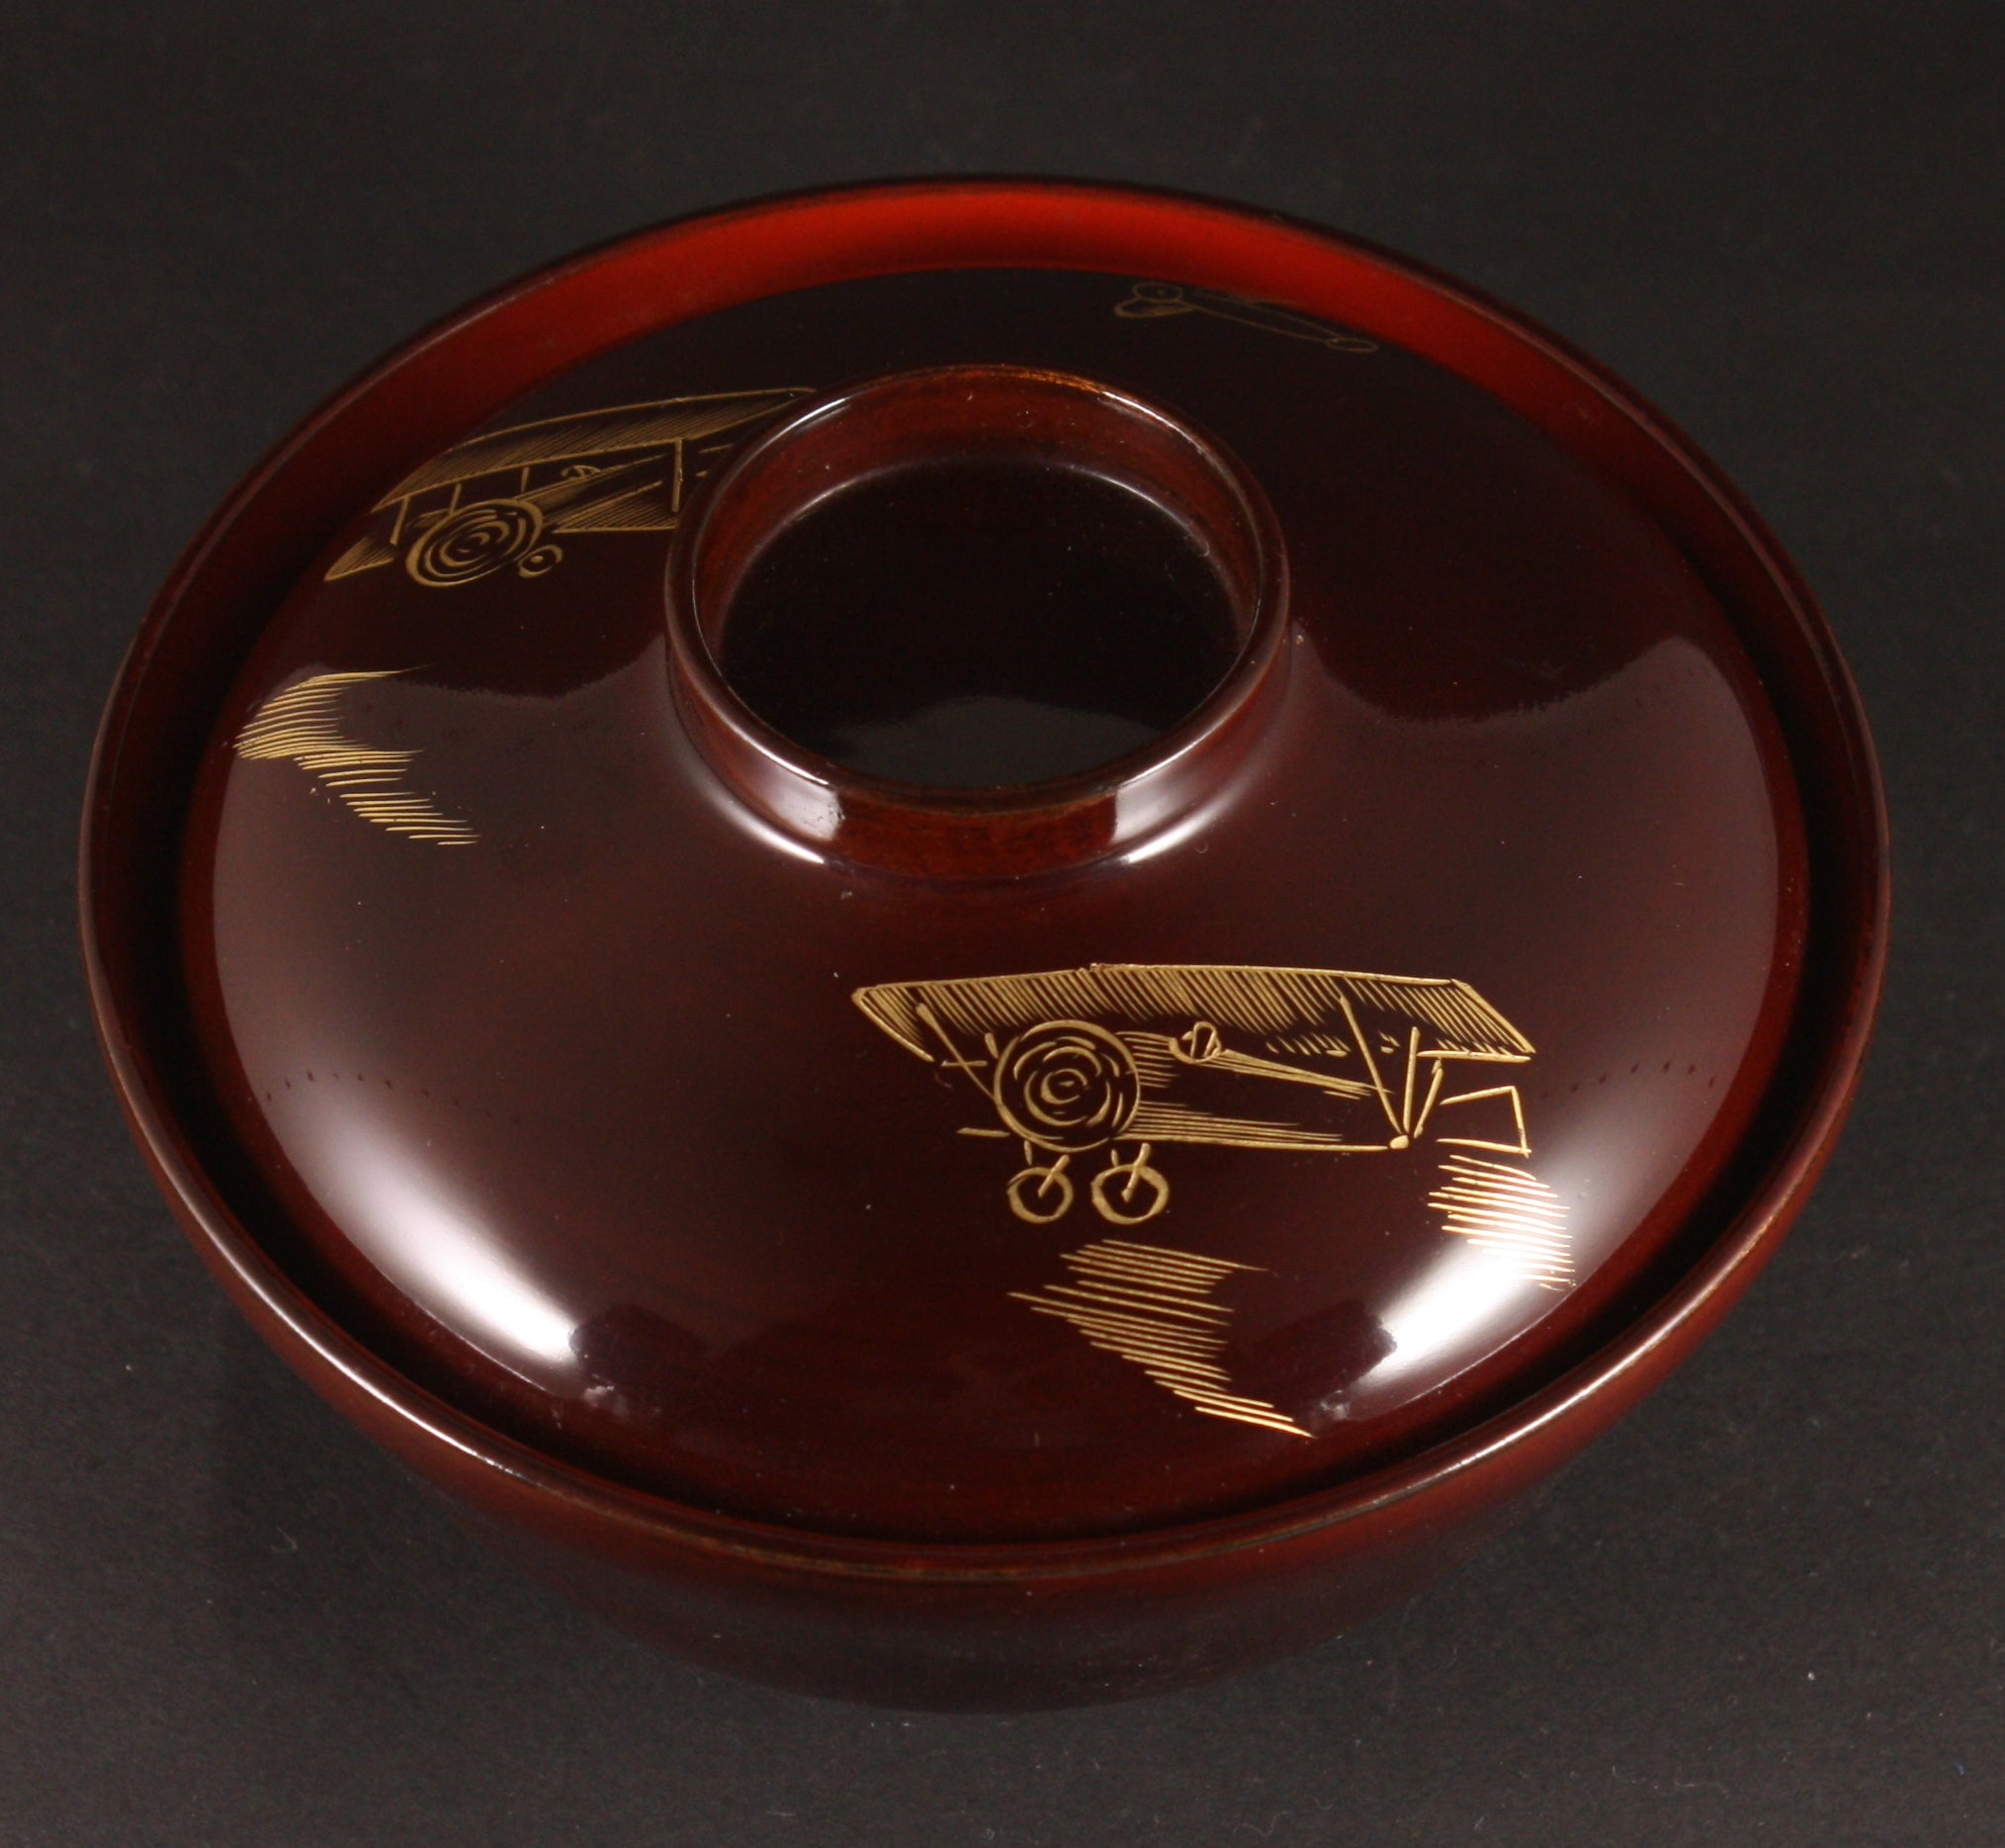 Rare Antique Japanese Military Biplane Army Air Corps Lacquer Lidded Rice Bowl